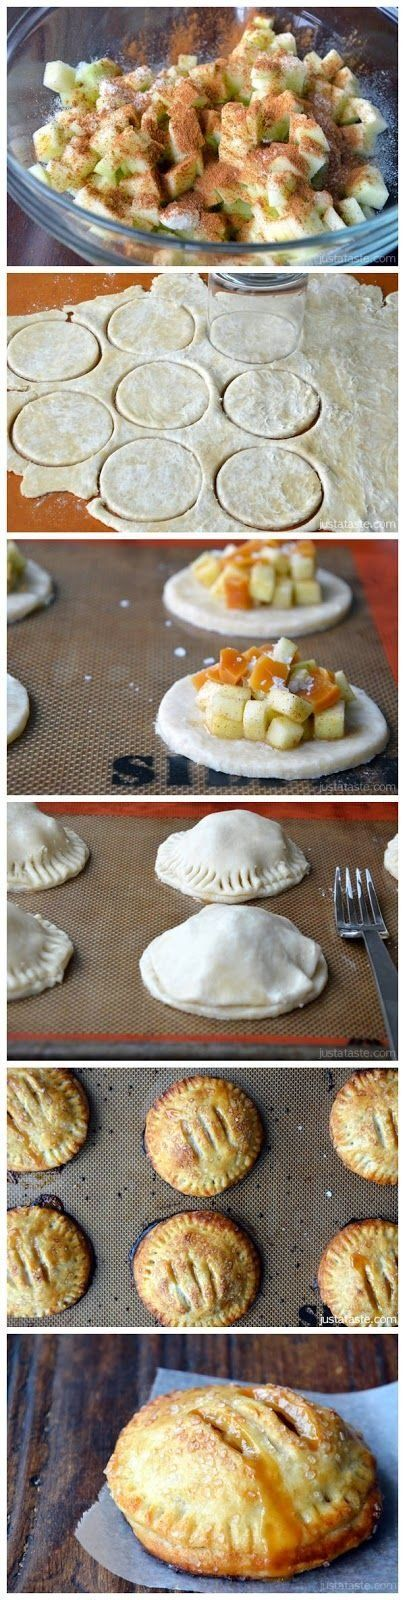 Cooking with children can be fun. Try these Salted Caramel Apple Hand Pies. Or leave out the caramel and dust apple pieces with a mixture of cinnamon sugar and cornstarch or flour.